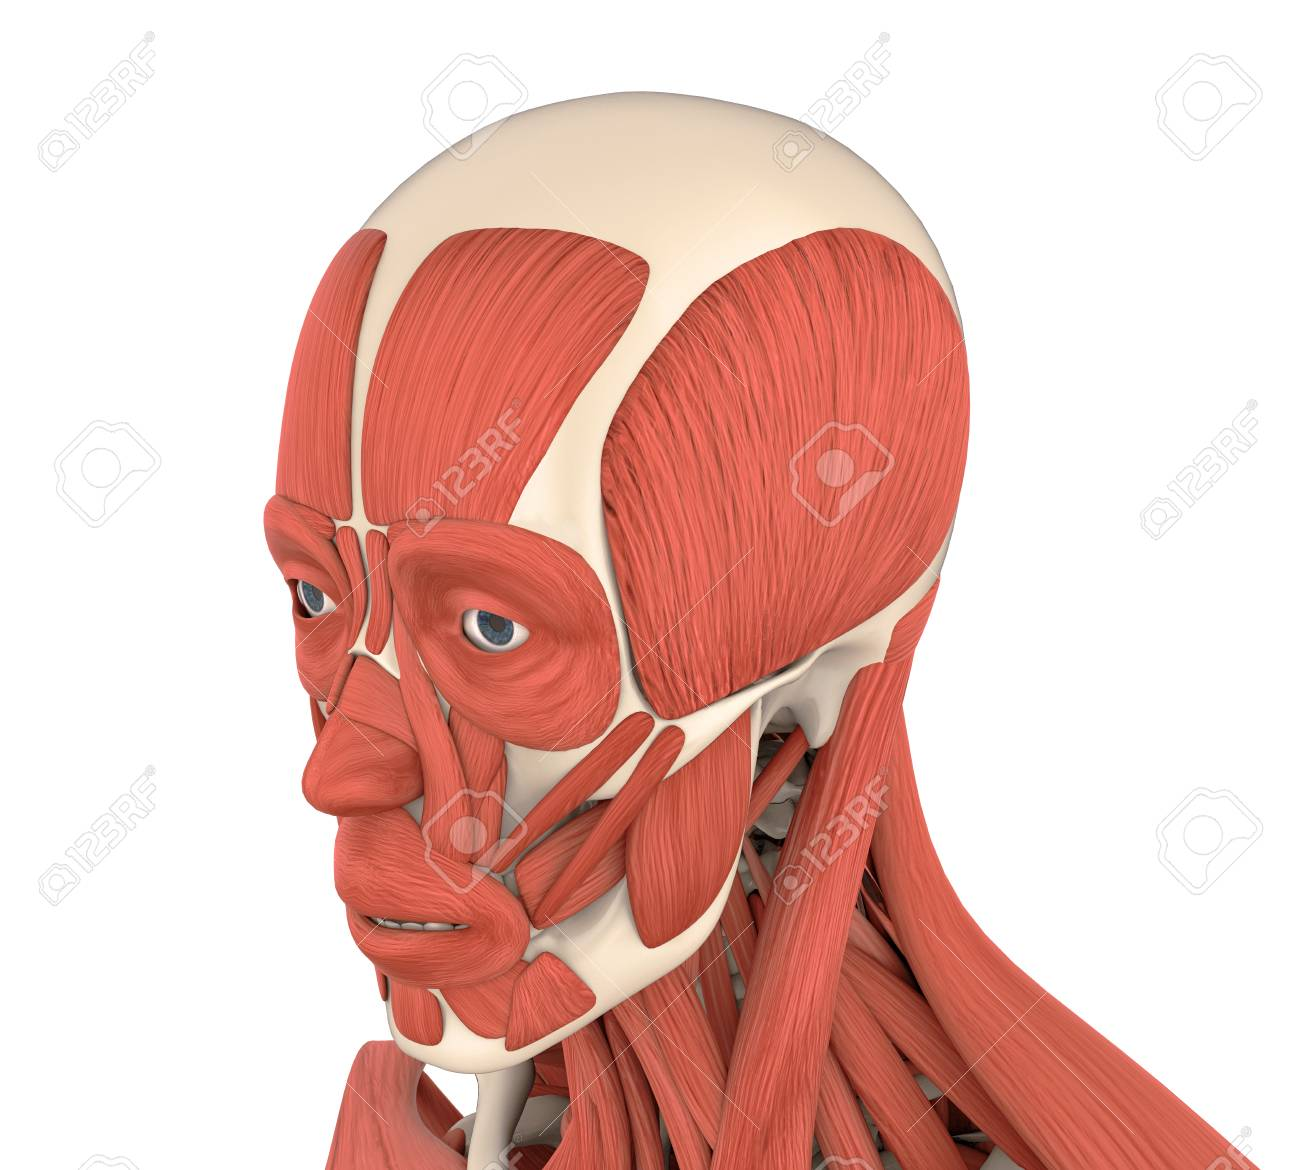 Human Facial Muscles Anatomy Stock Photo Picture And Royalty Free